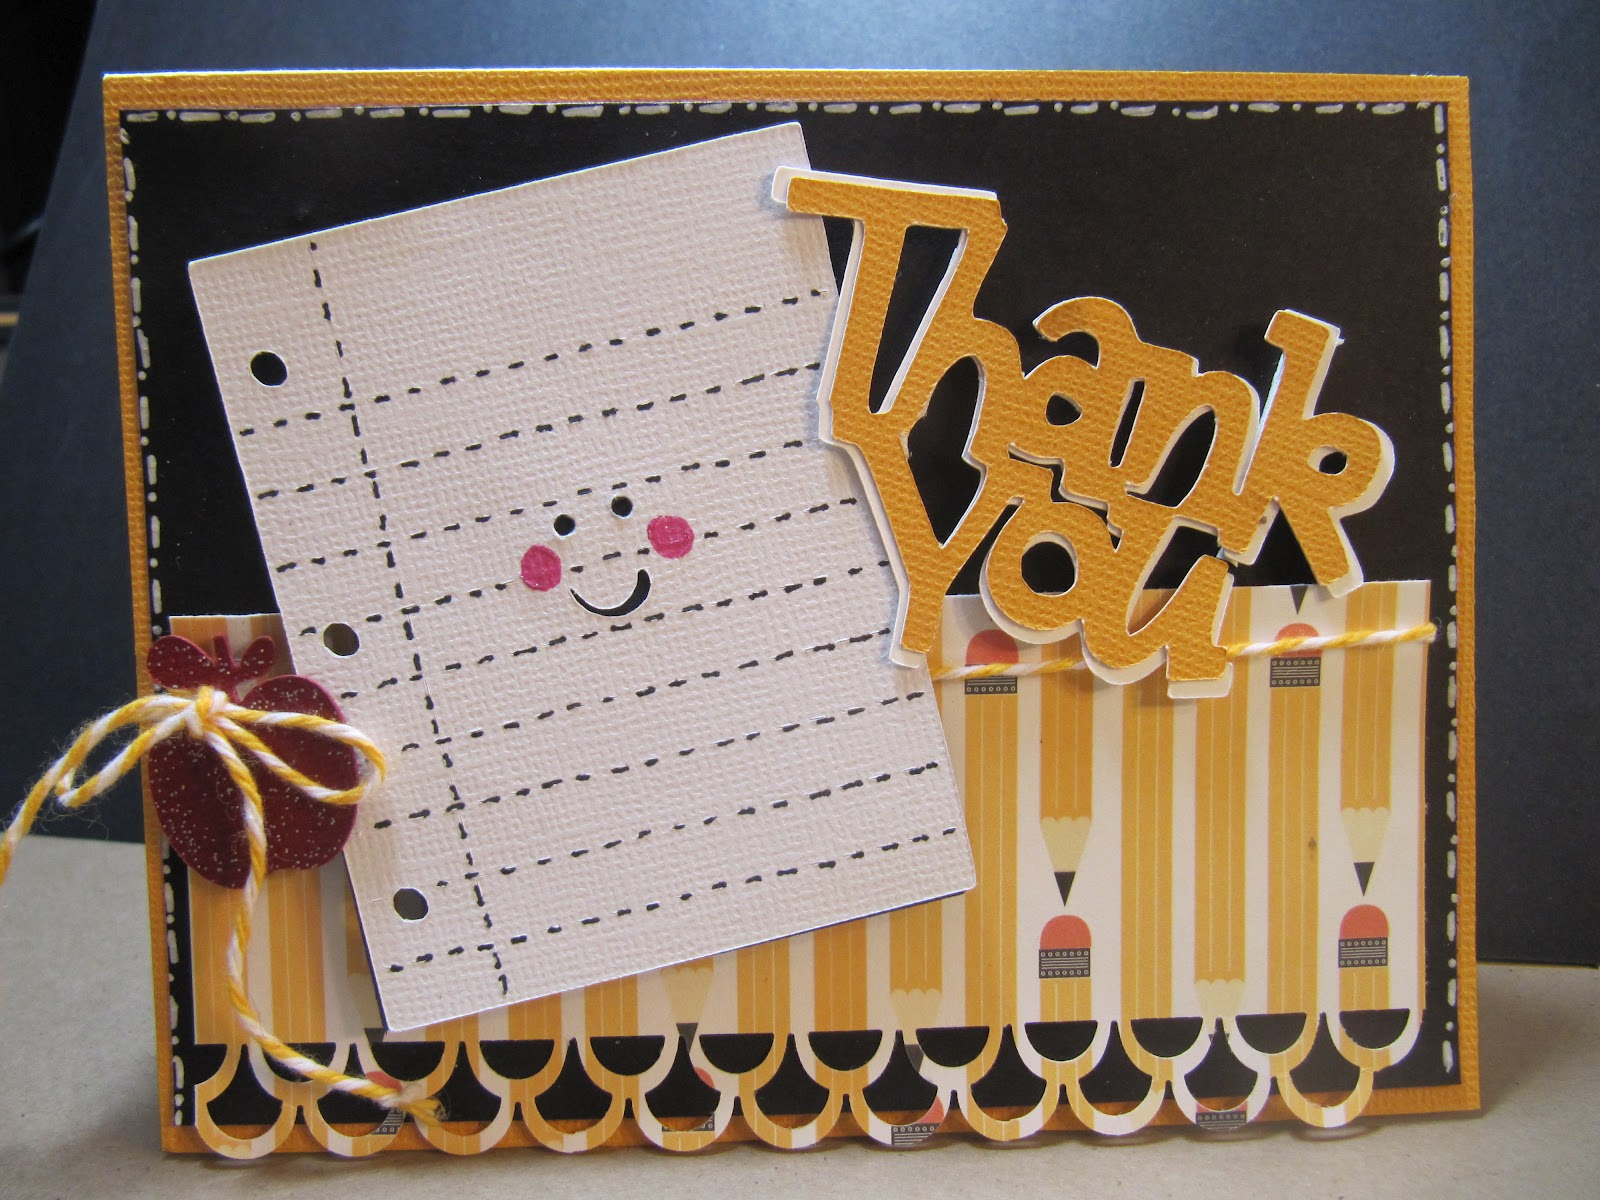 Sunshine creations and crafts thank you card teacher for Thank you crafts for teachers